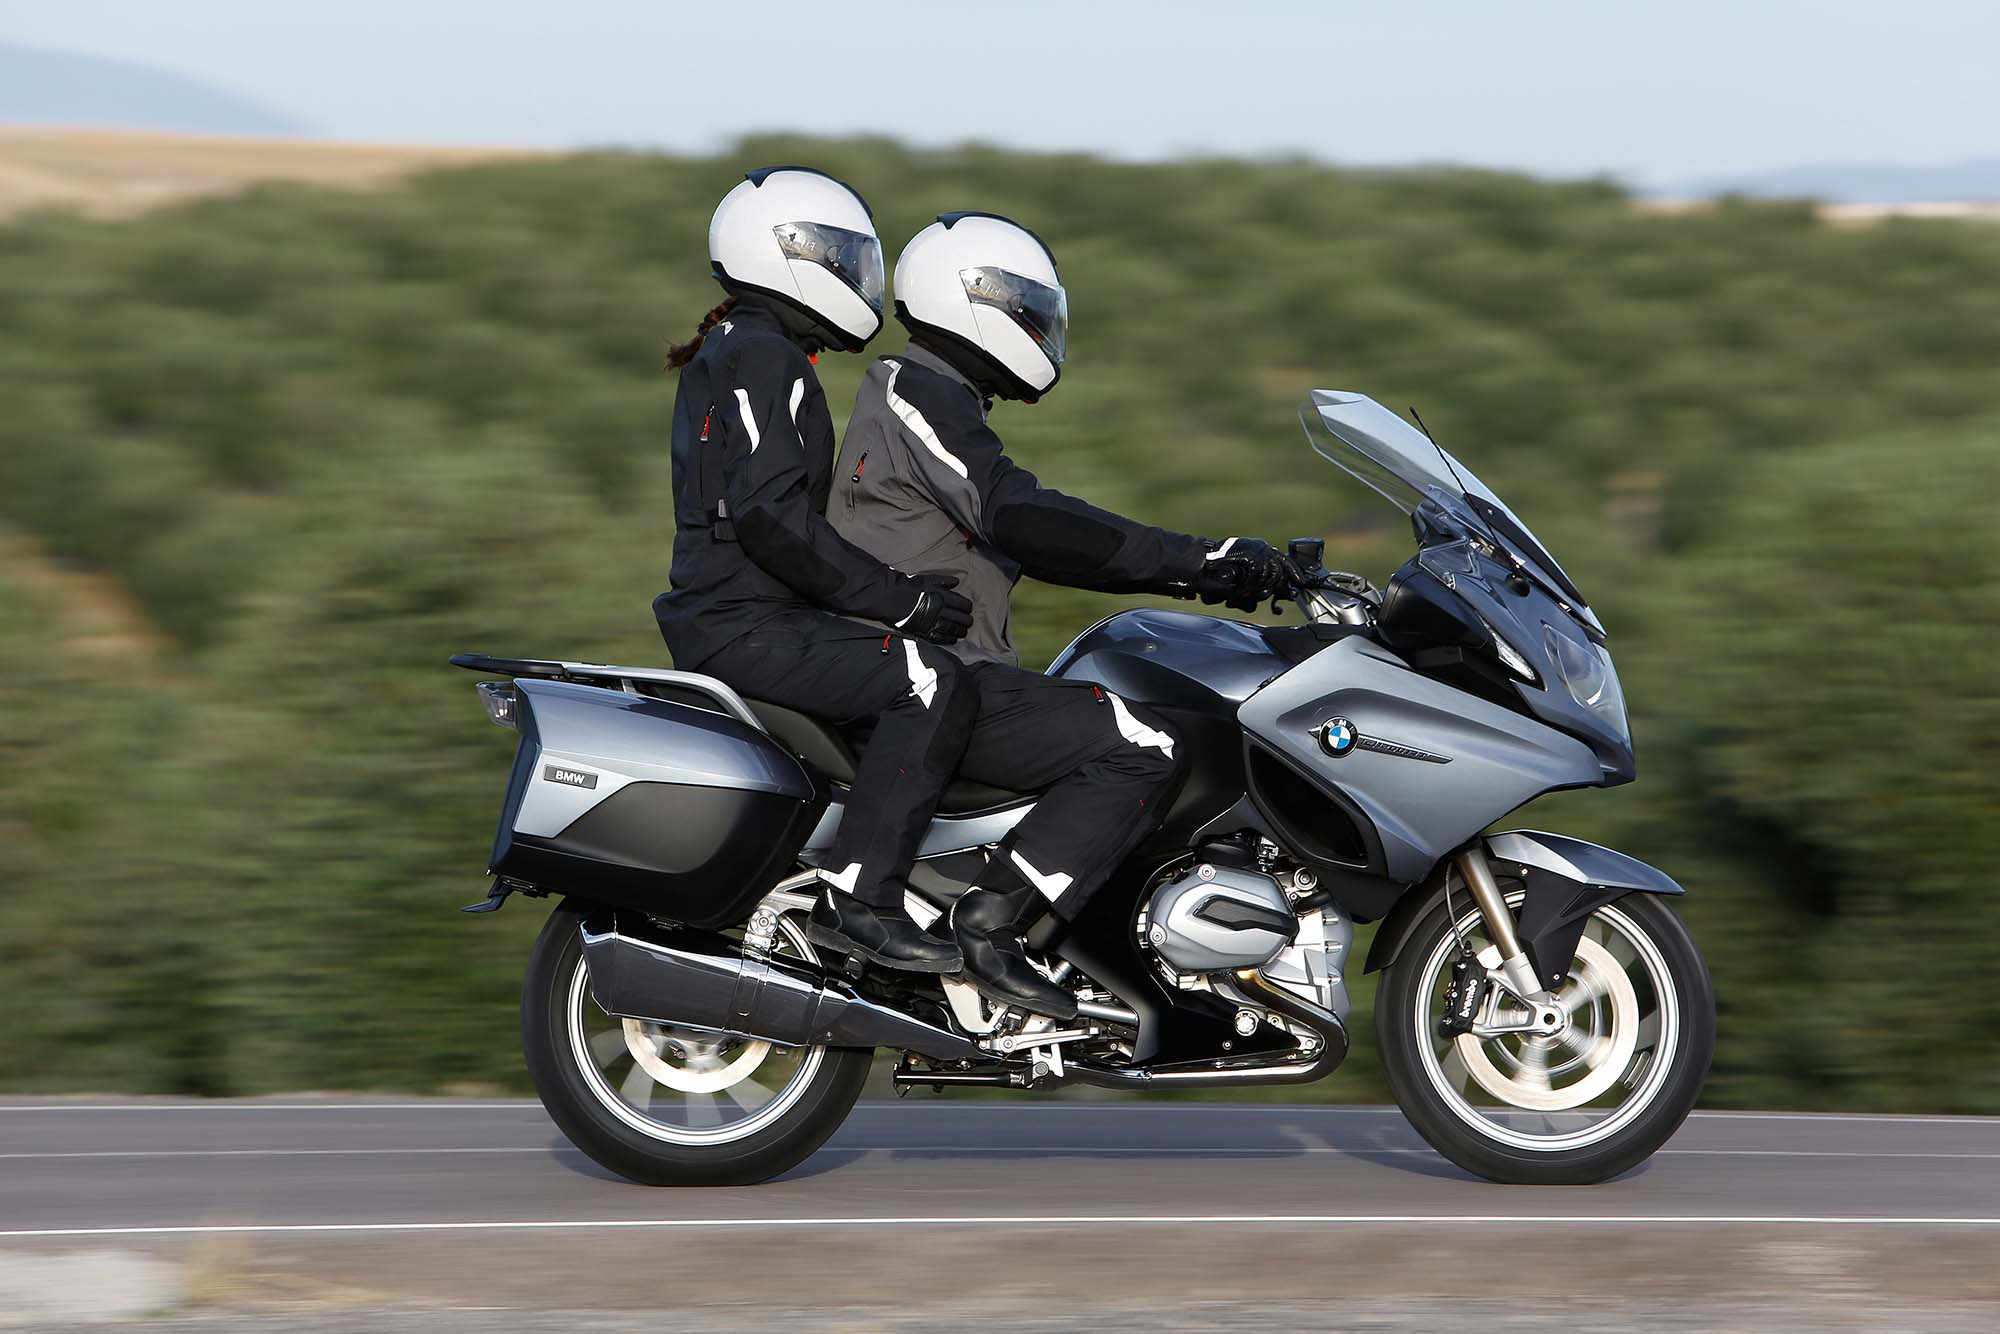 lbs at the curb with fuel in its 6 6 gallon tank the 2014 bmw r1200rt. Black Bedroom Furniture Sets. Home Design Ideas